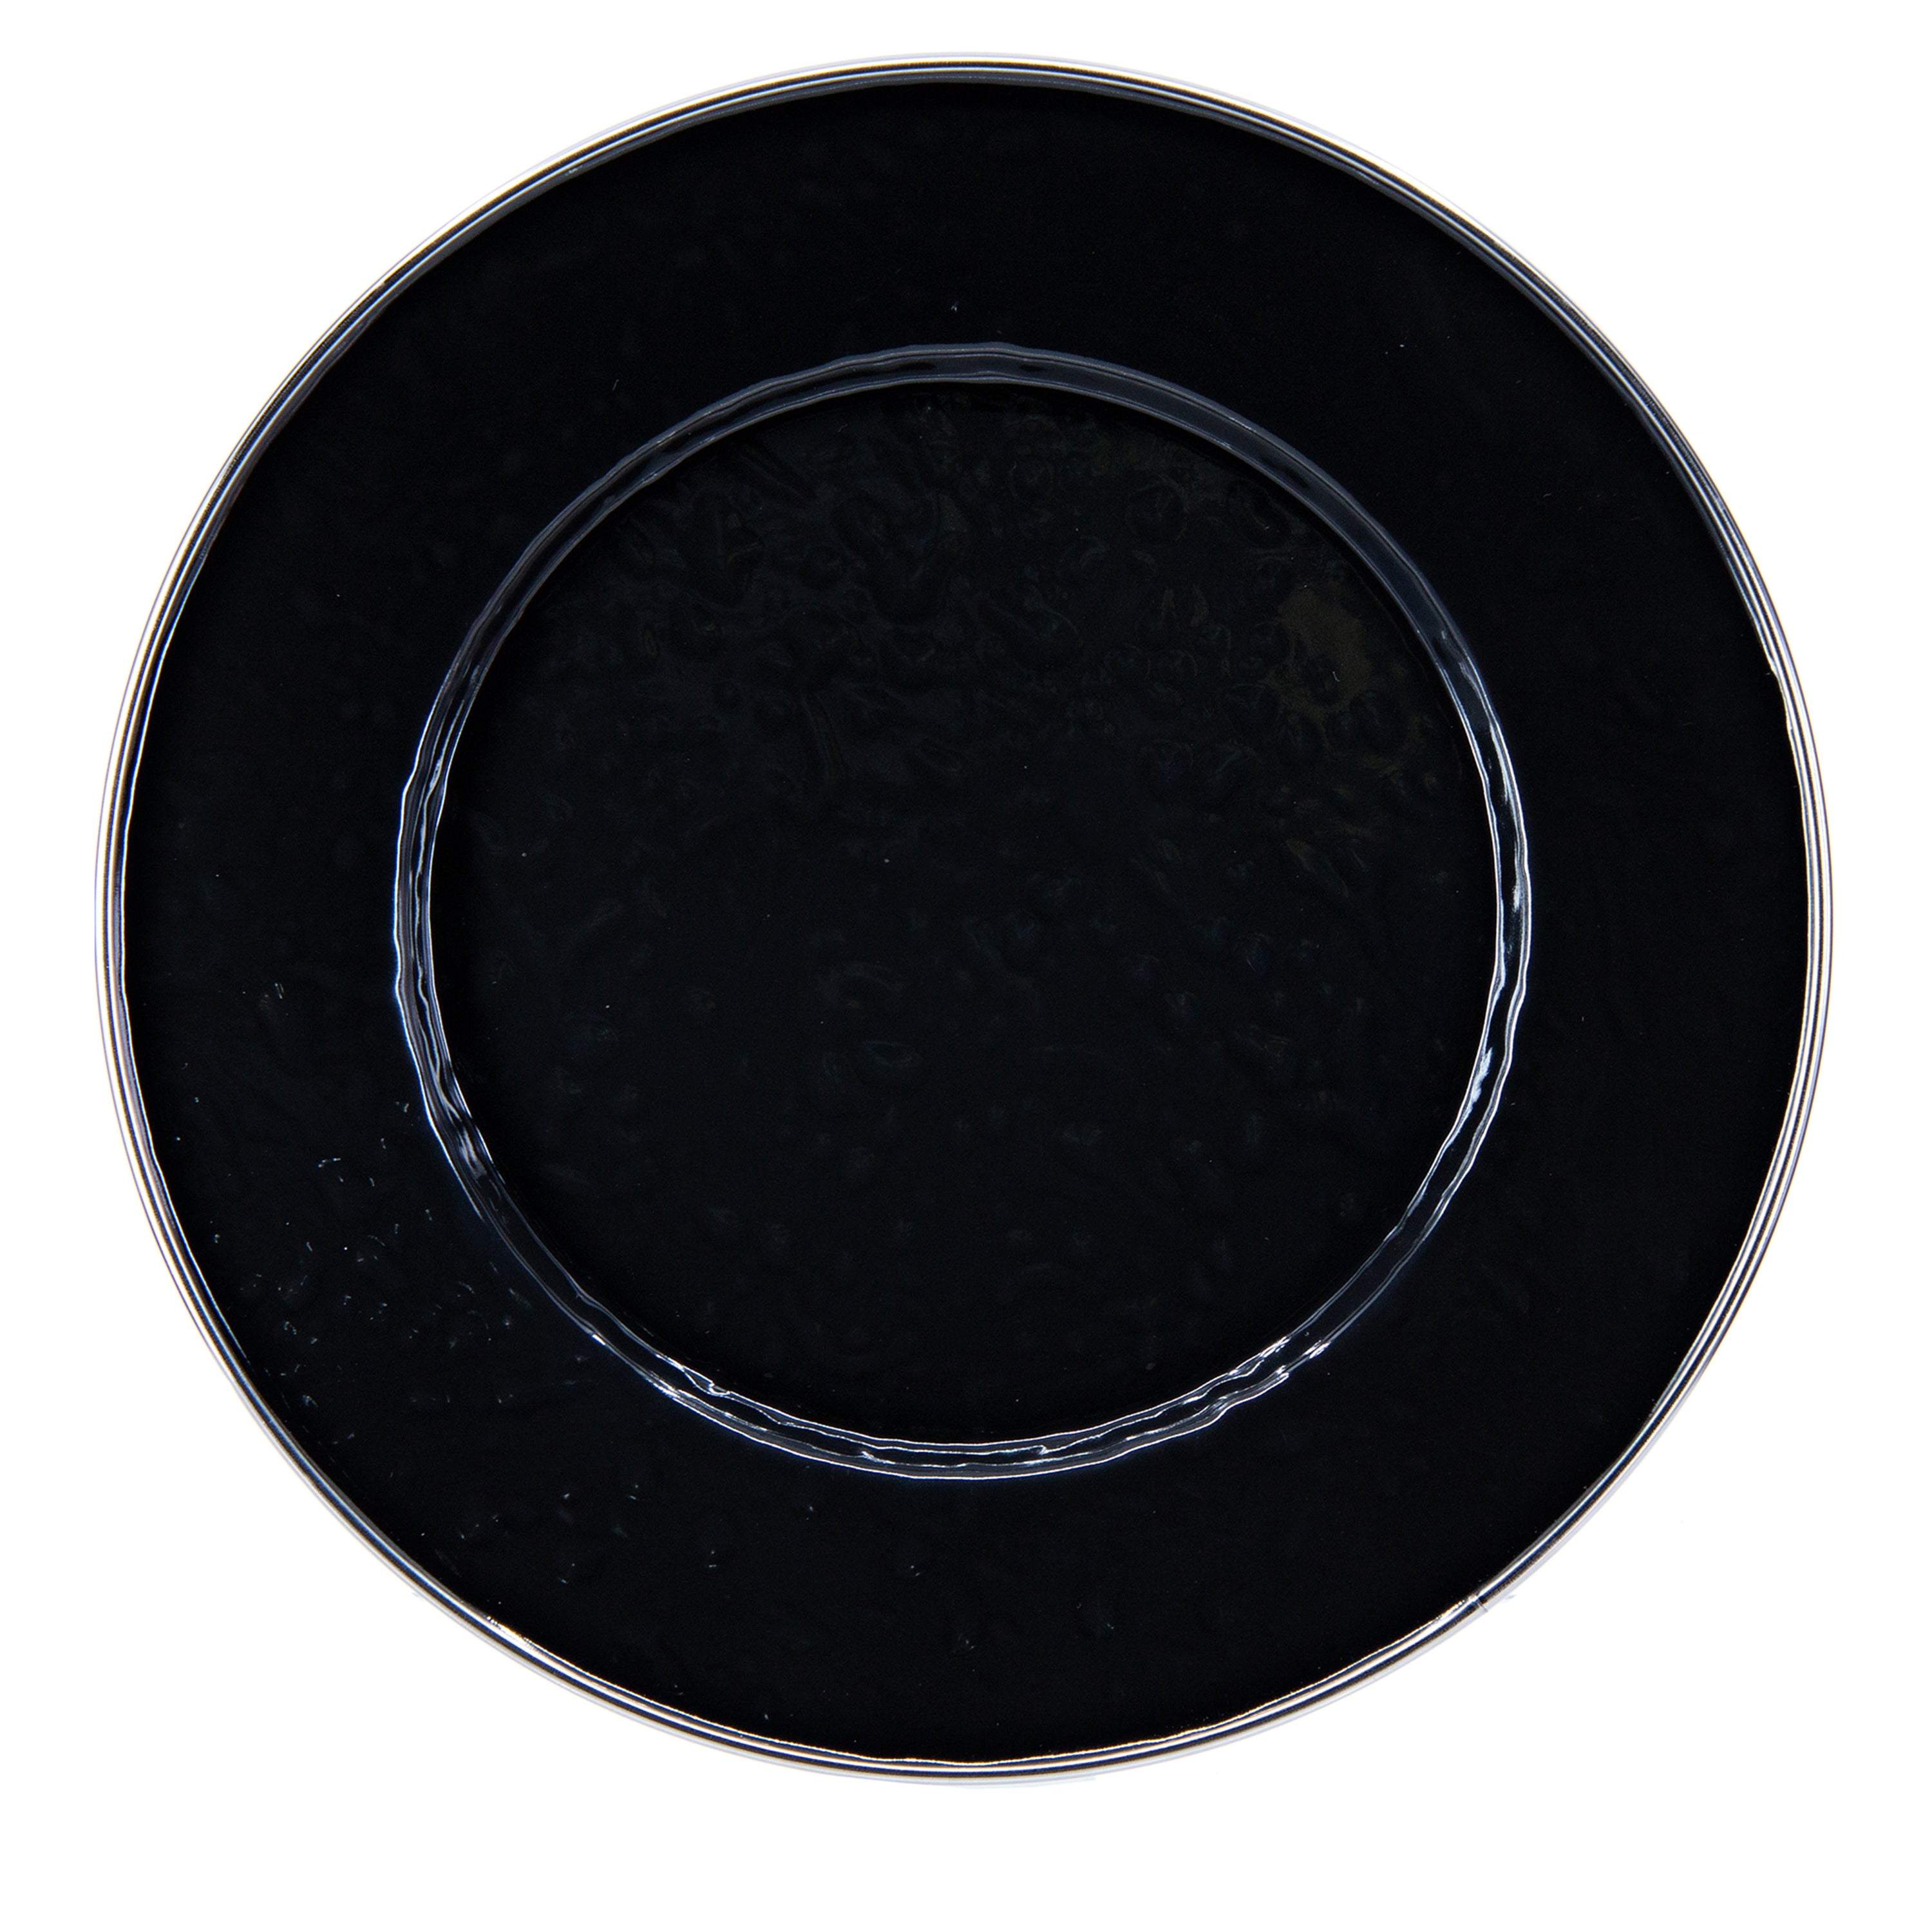 BK11S4 - Set of 4 Solid Black Sandwich Plates Image 2